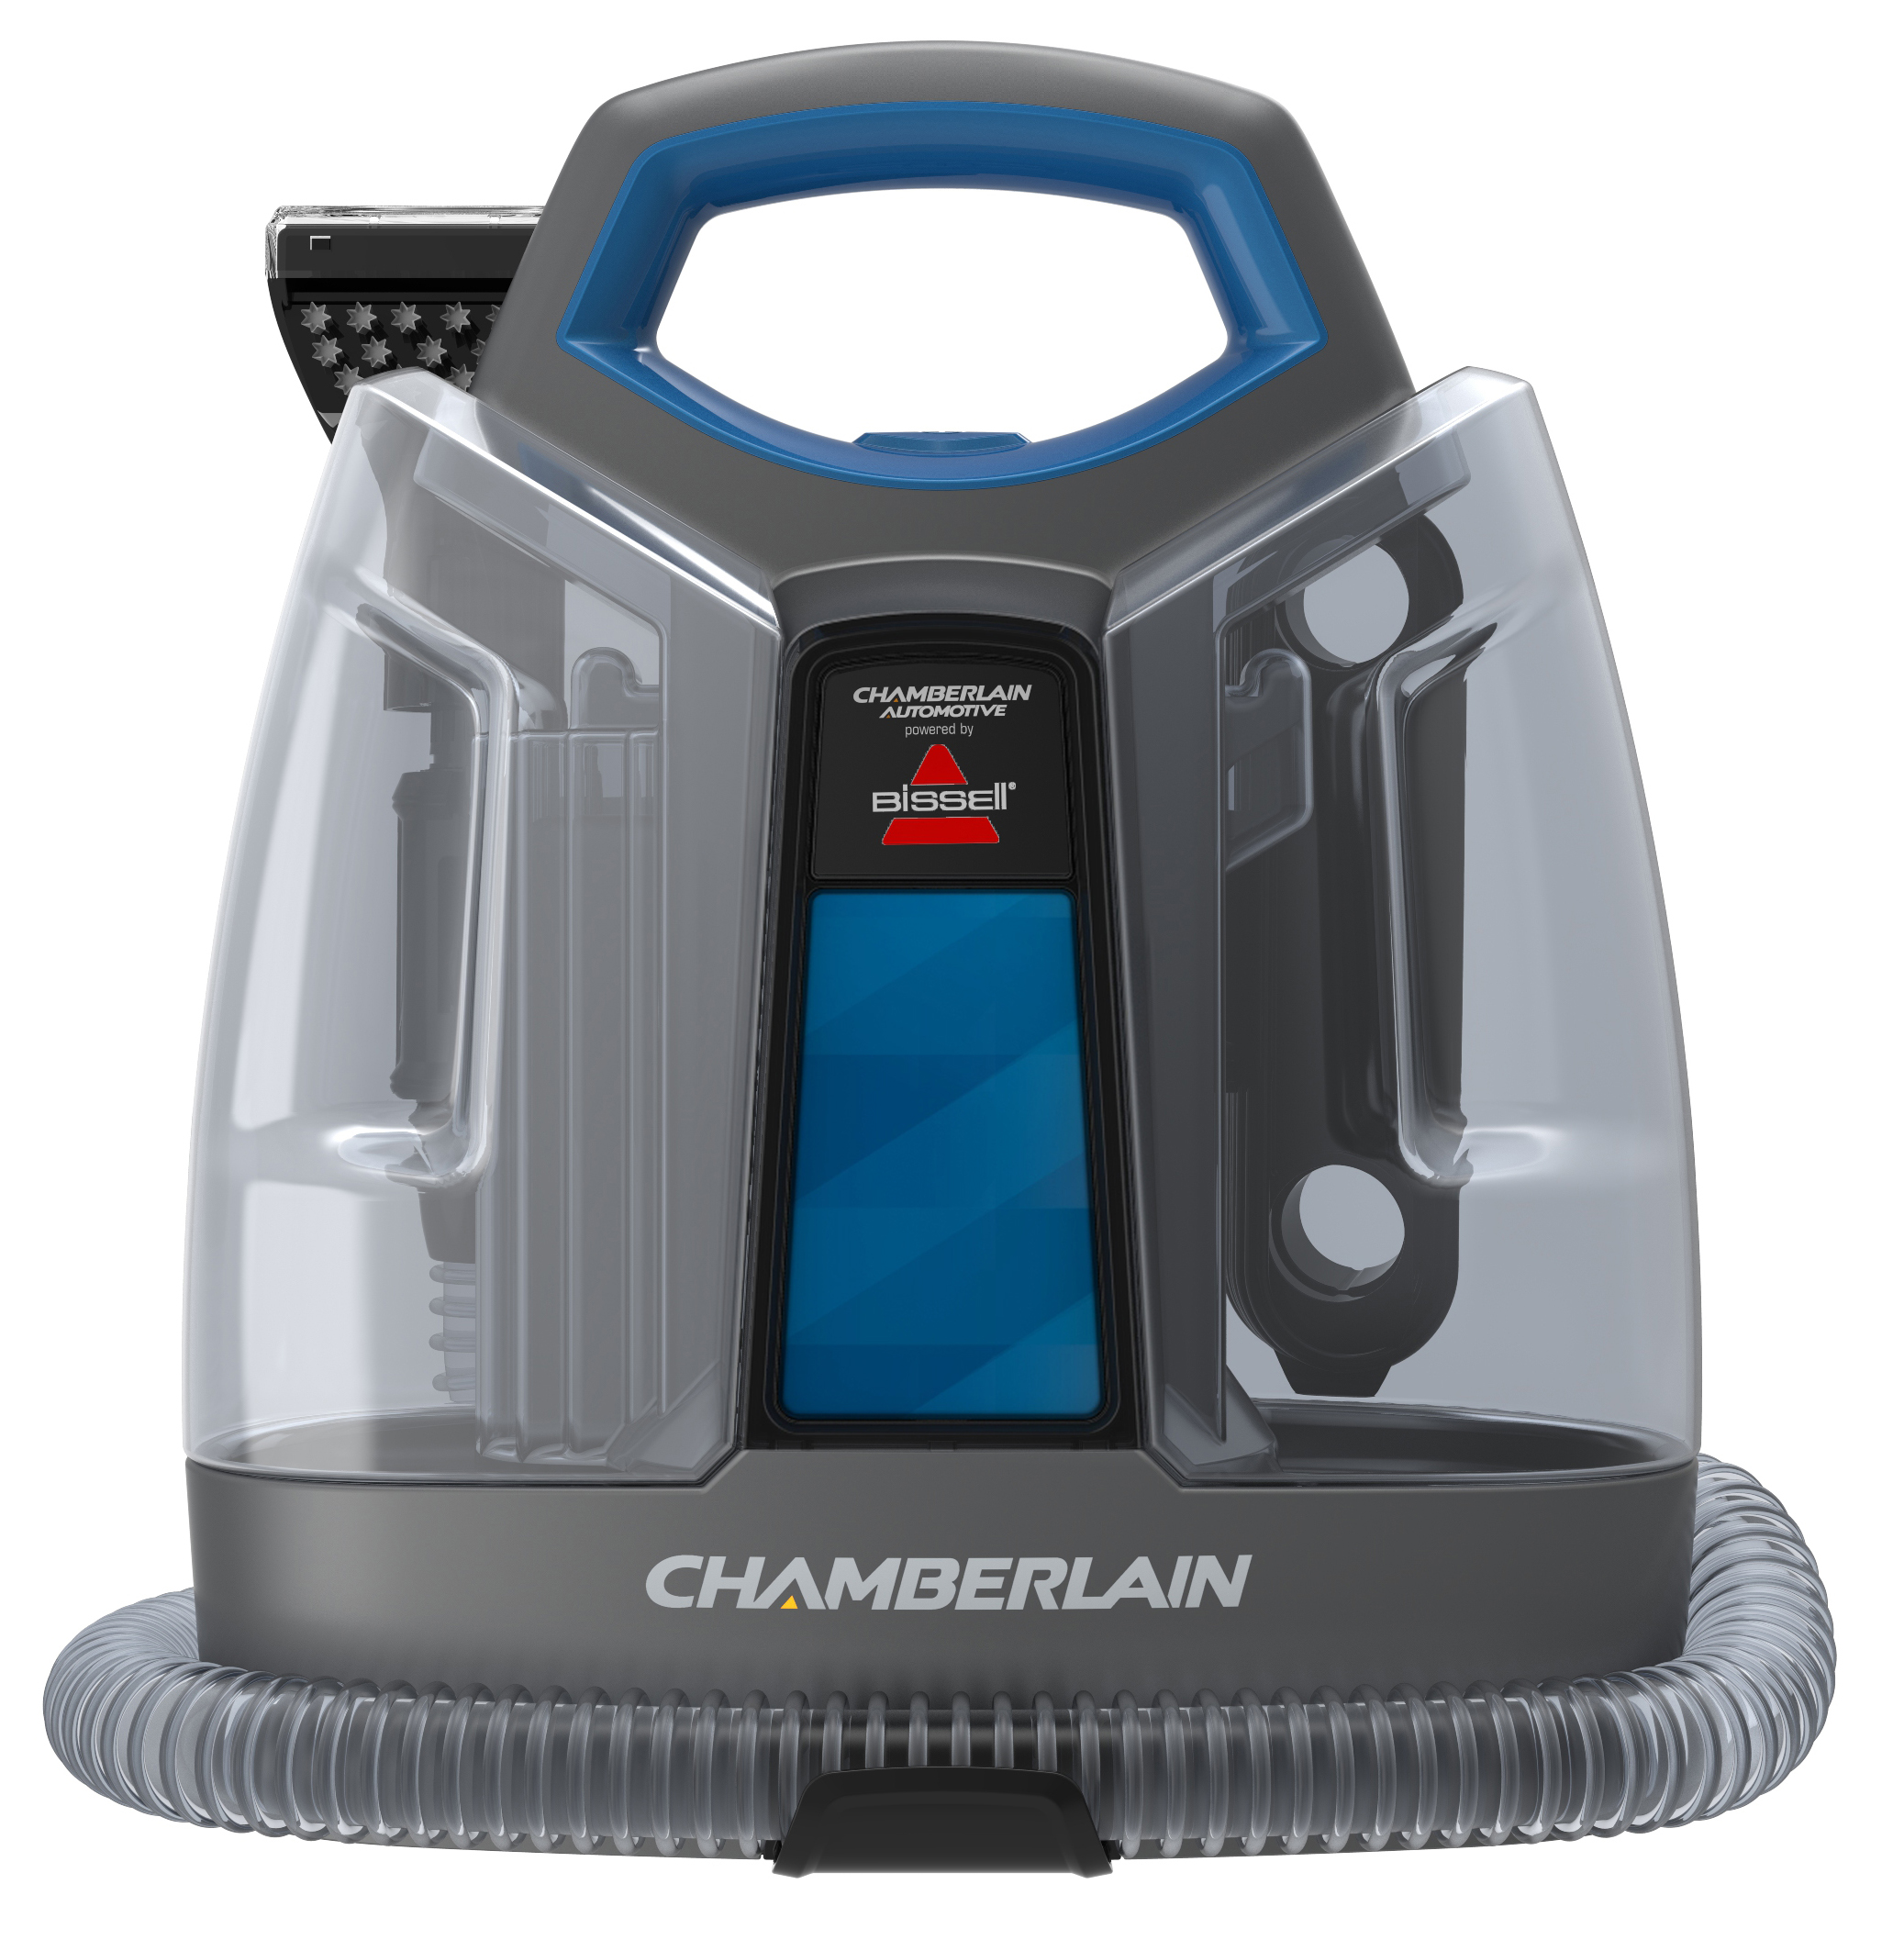 chamberlain automotive deep cleaner powered by bissell launches an innovative portable car. Black Bedroom Furniture Sets. Home Design Ideas